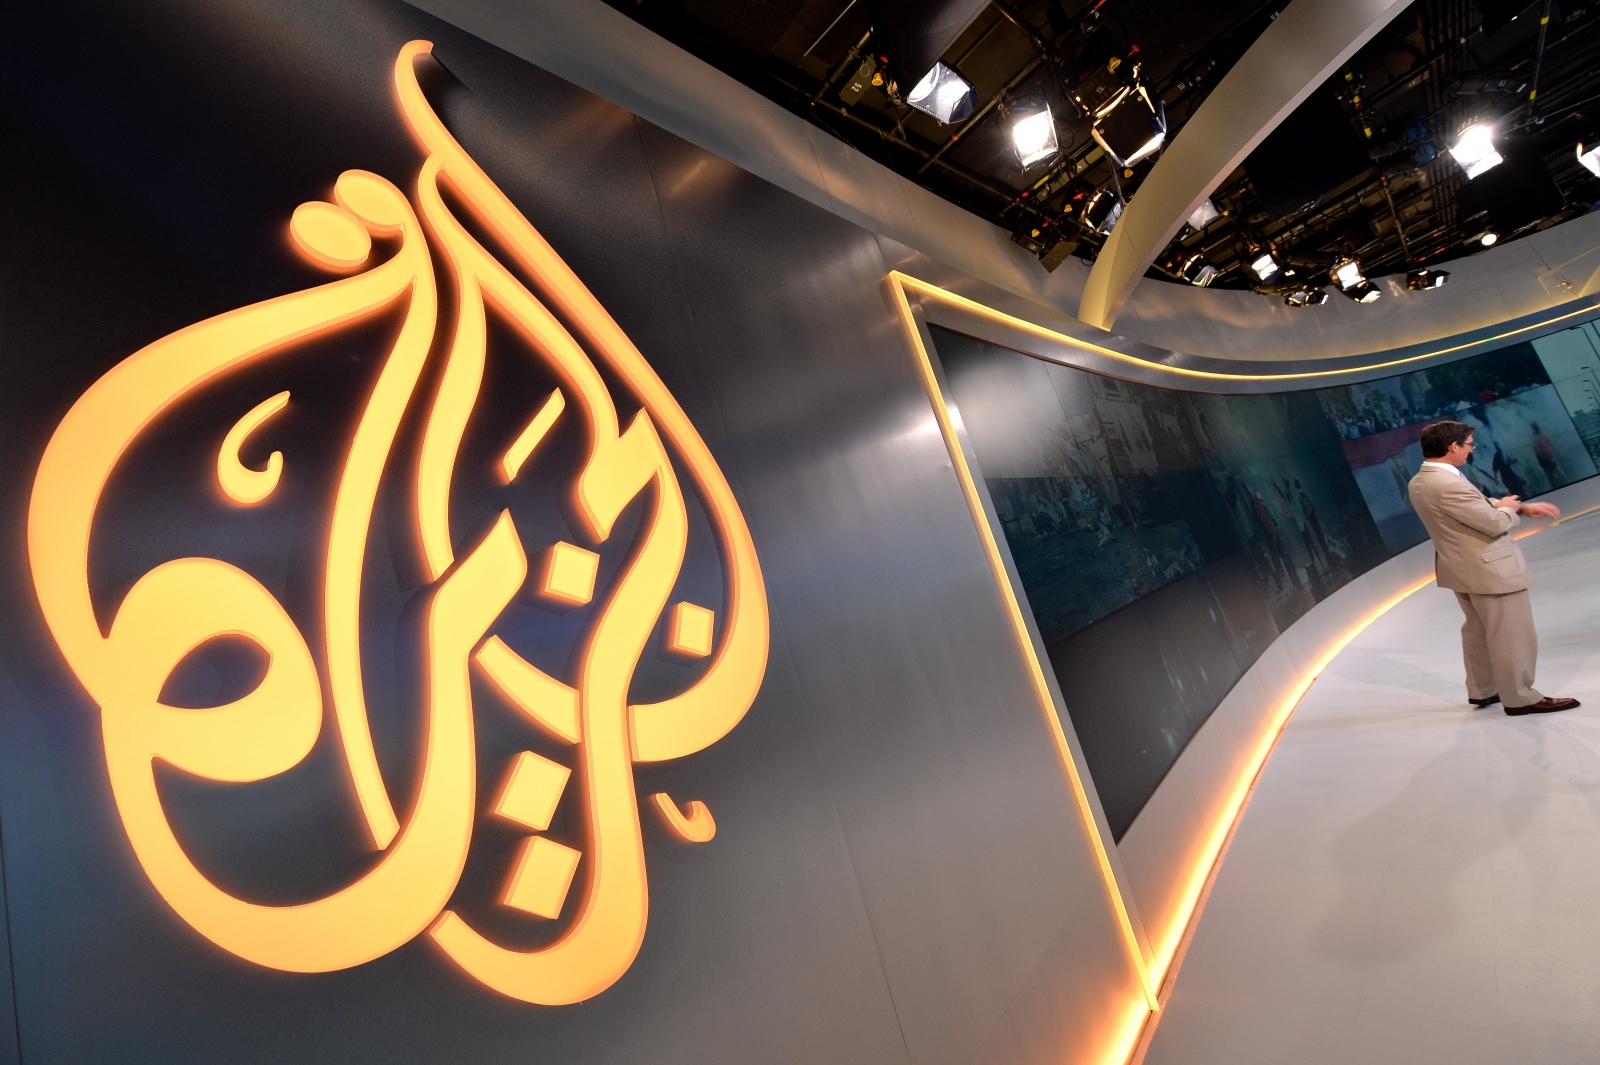 Al Jazeera journalist arrest